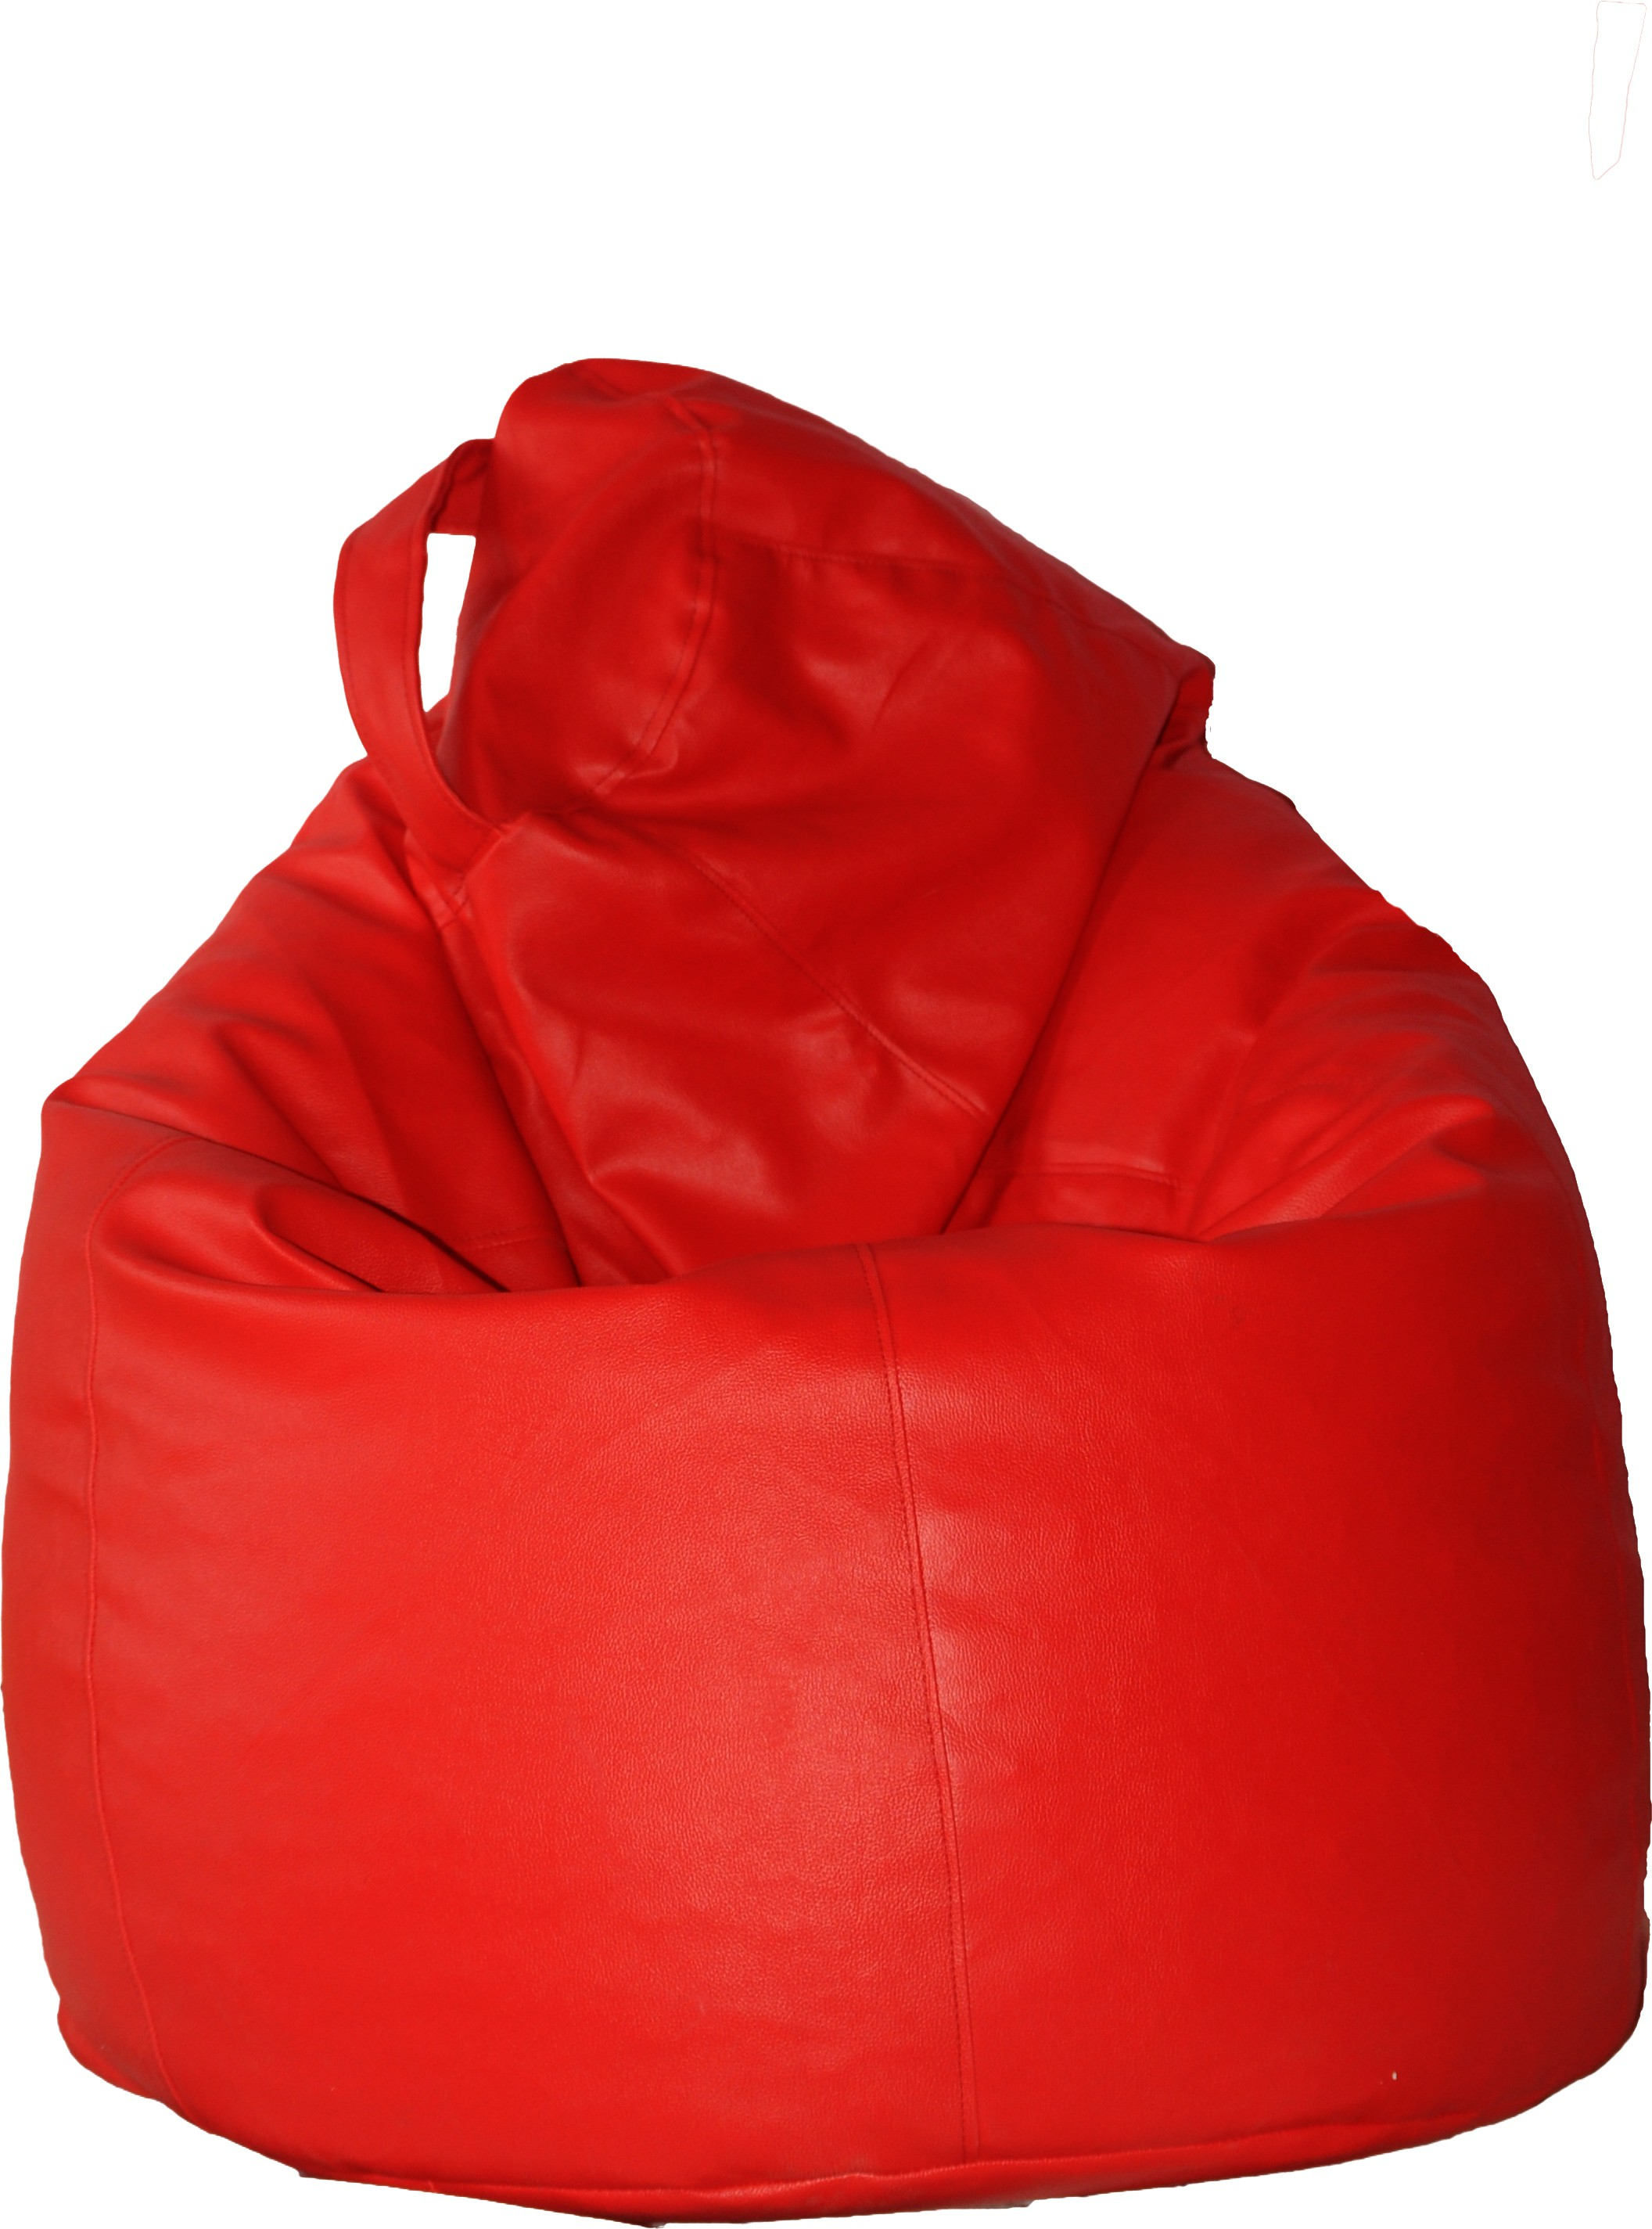 View Amaze XXXL Bean Bag Cover(Red) Furniture (Amaze)